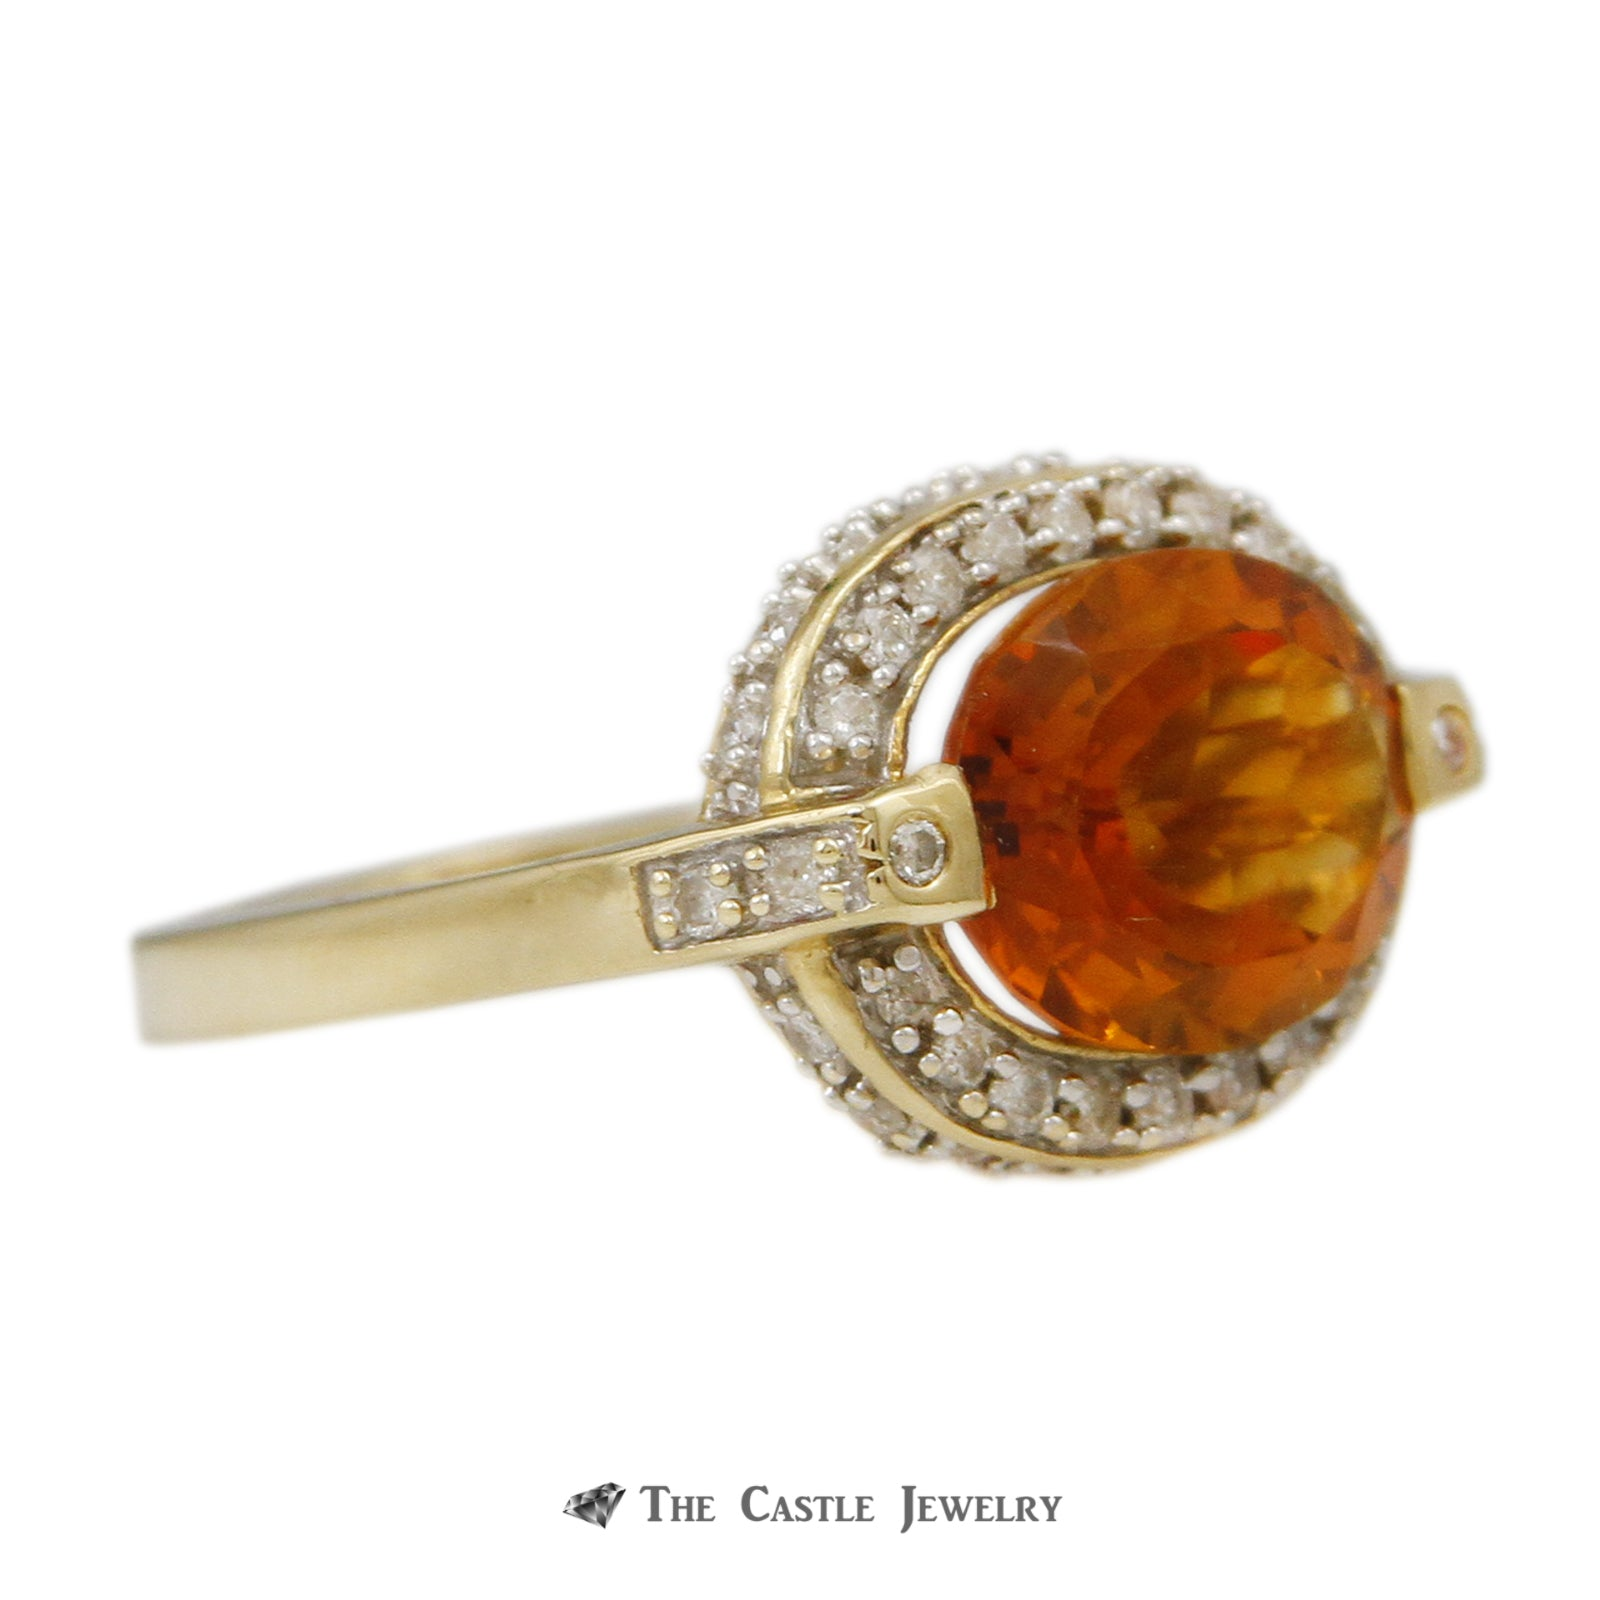 Oval Citrine Ring w/ 1/2cttw Diamond Bezel & Cathedral Mounting in 14k Yellow Gold-2